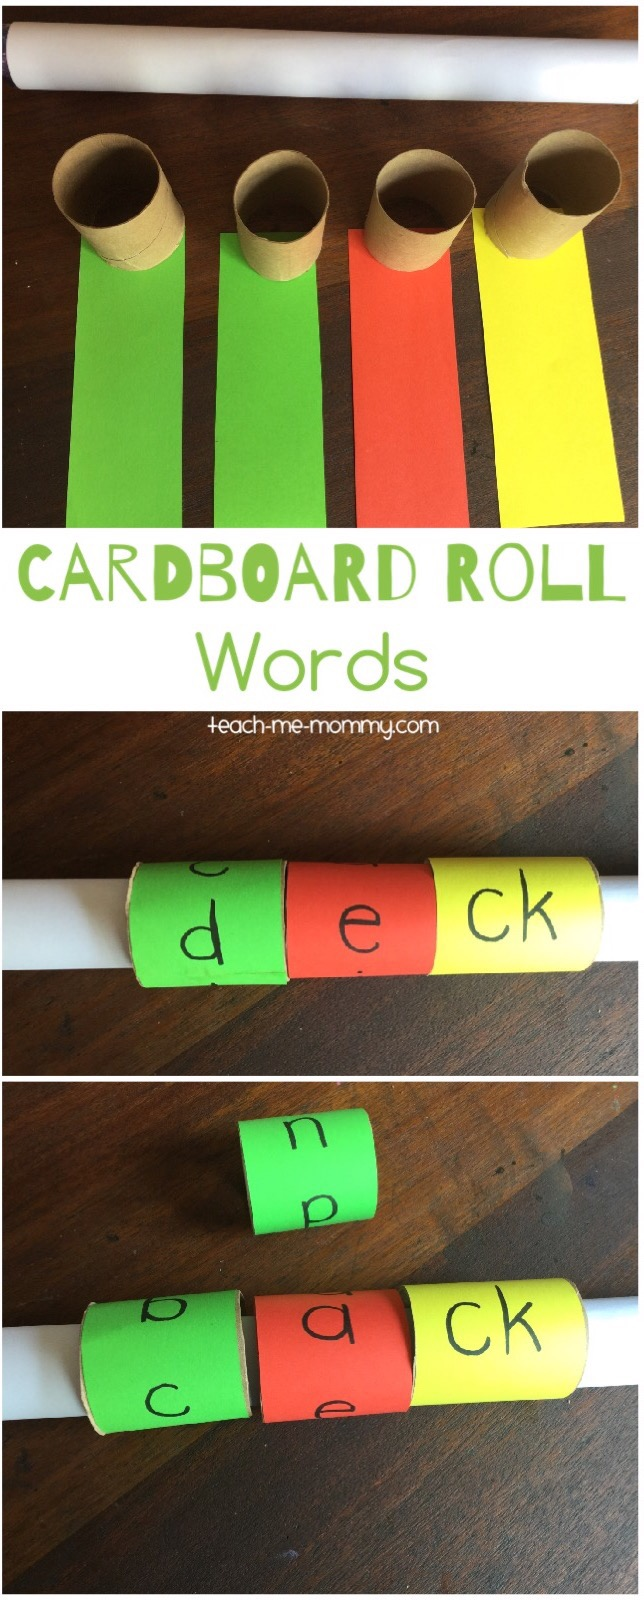 cardboard roll words